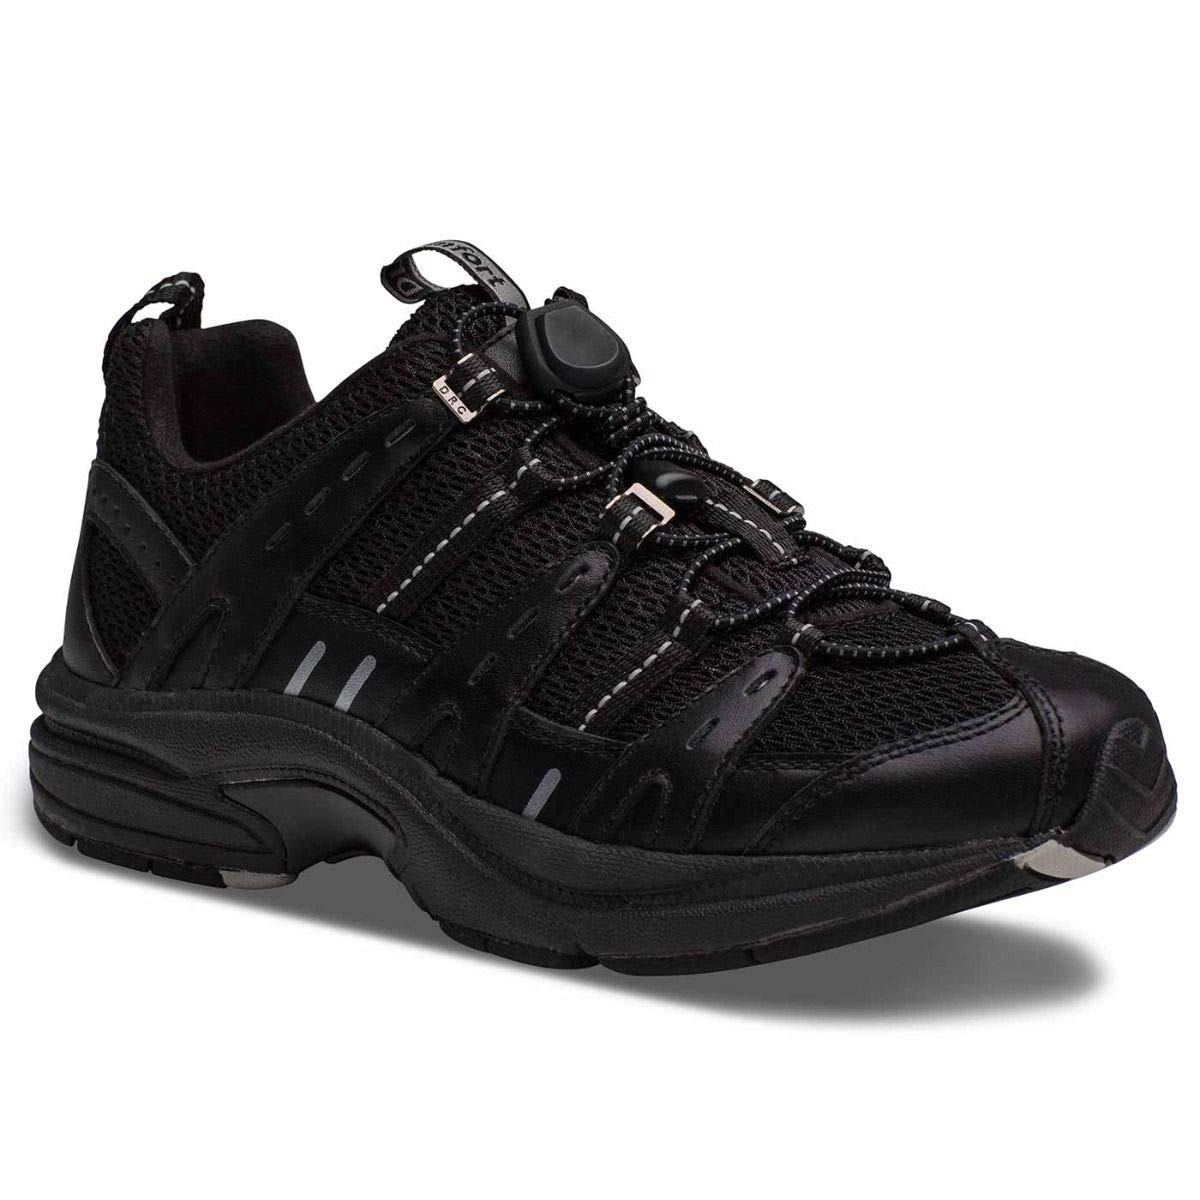 Dr. Comfort Refresh Women's Therapeutic Diabetic Extra Depth Shoe: Black/Black 9 Wide (C-D) by Dr. Comfort